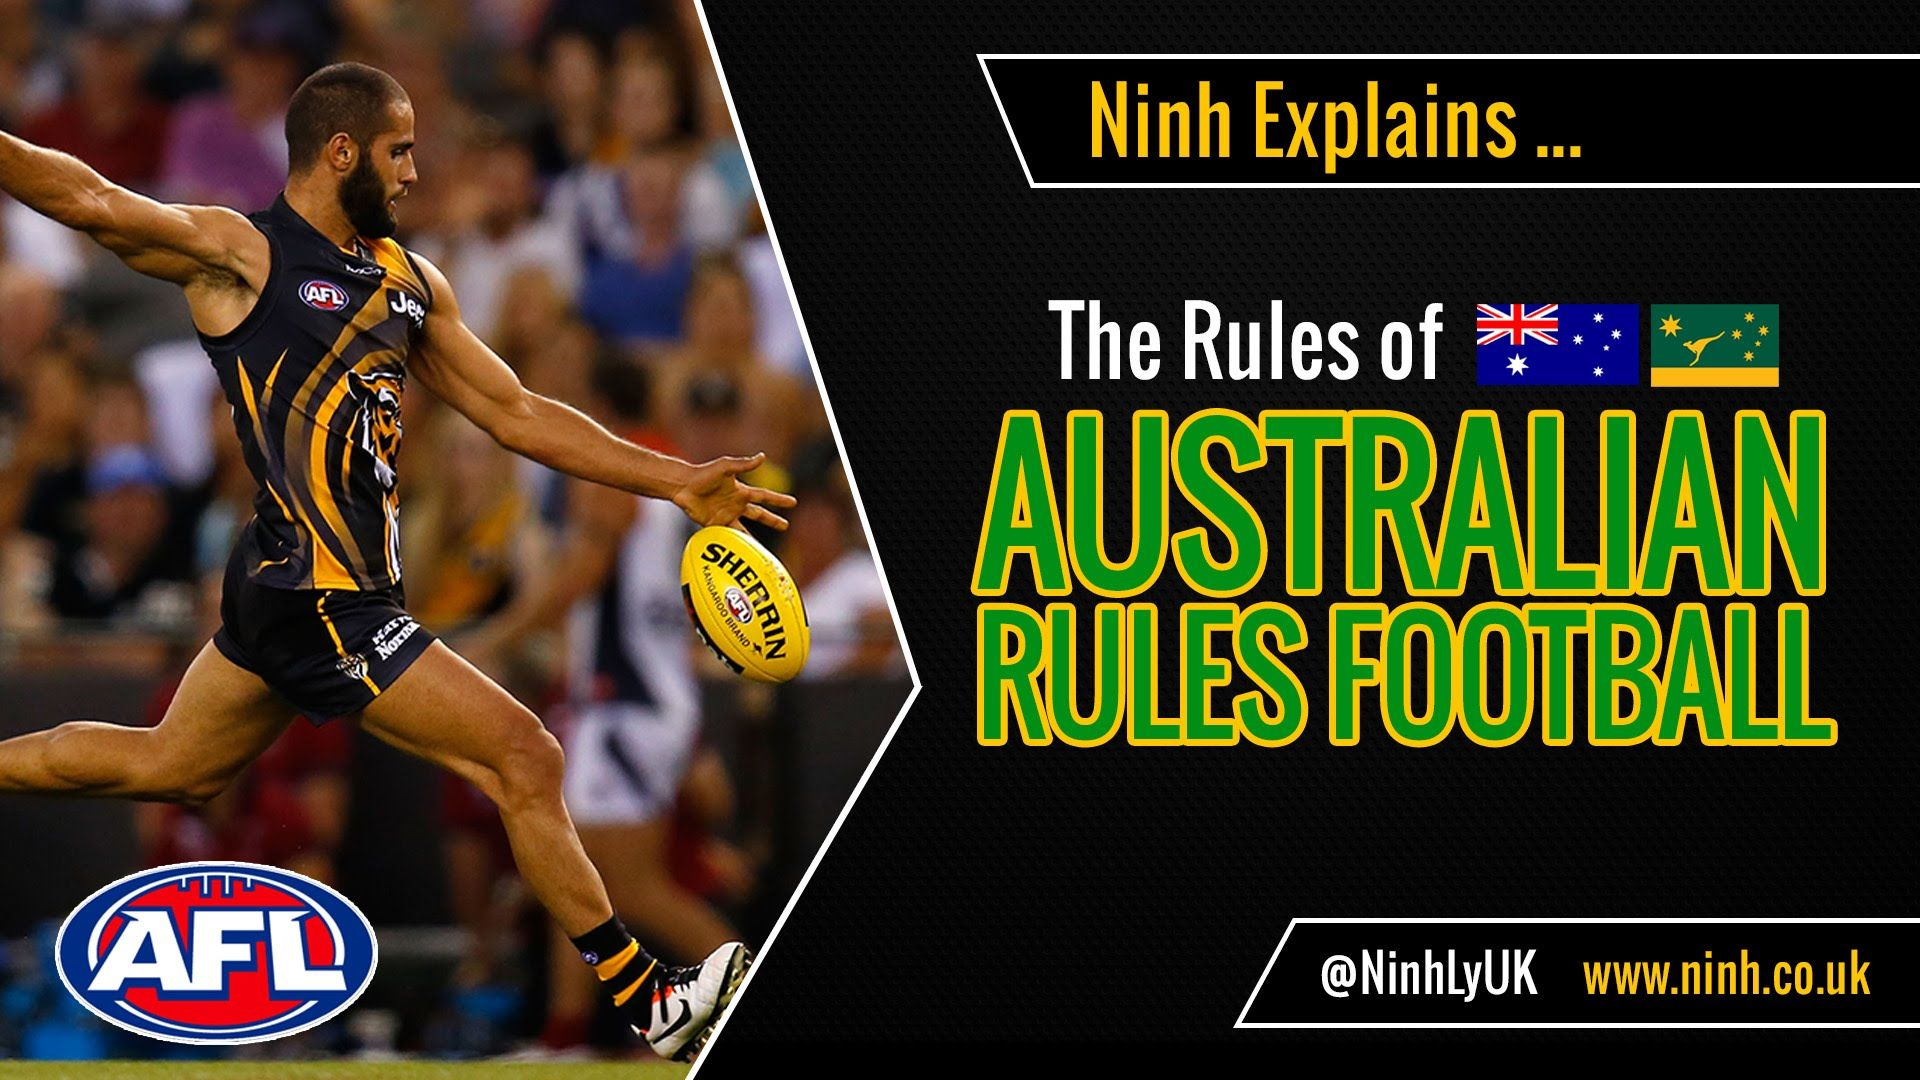 The Rules of Australian (Aussie Rules) Football